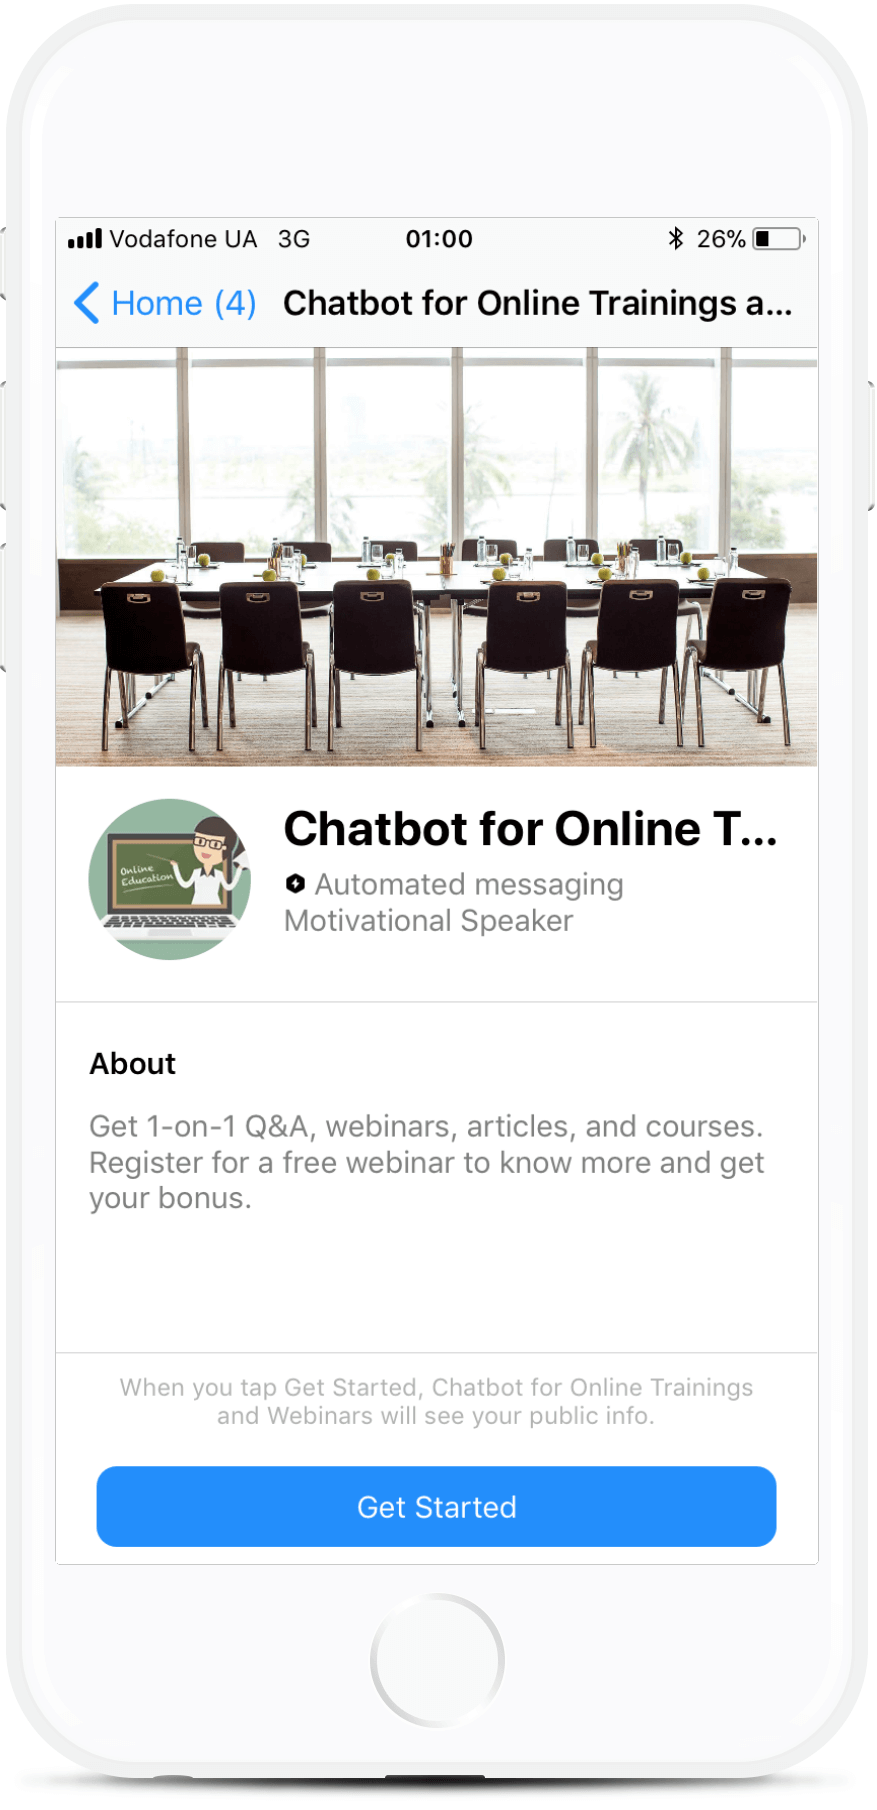 Facebook Chatbot for Online Trainings and Webinars